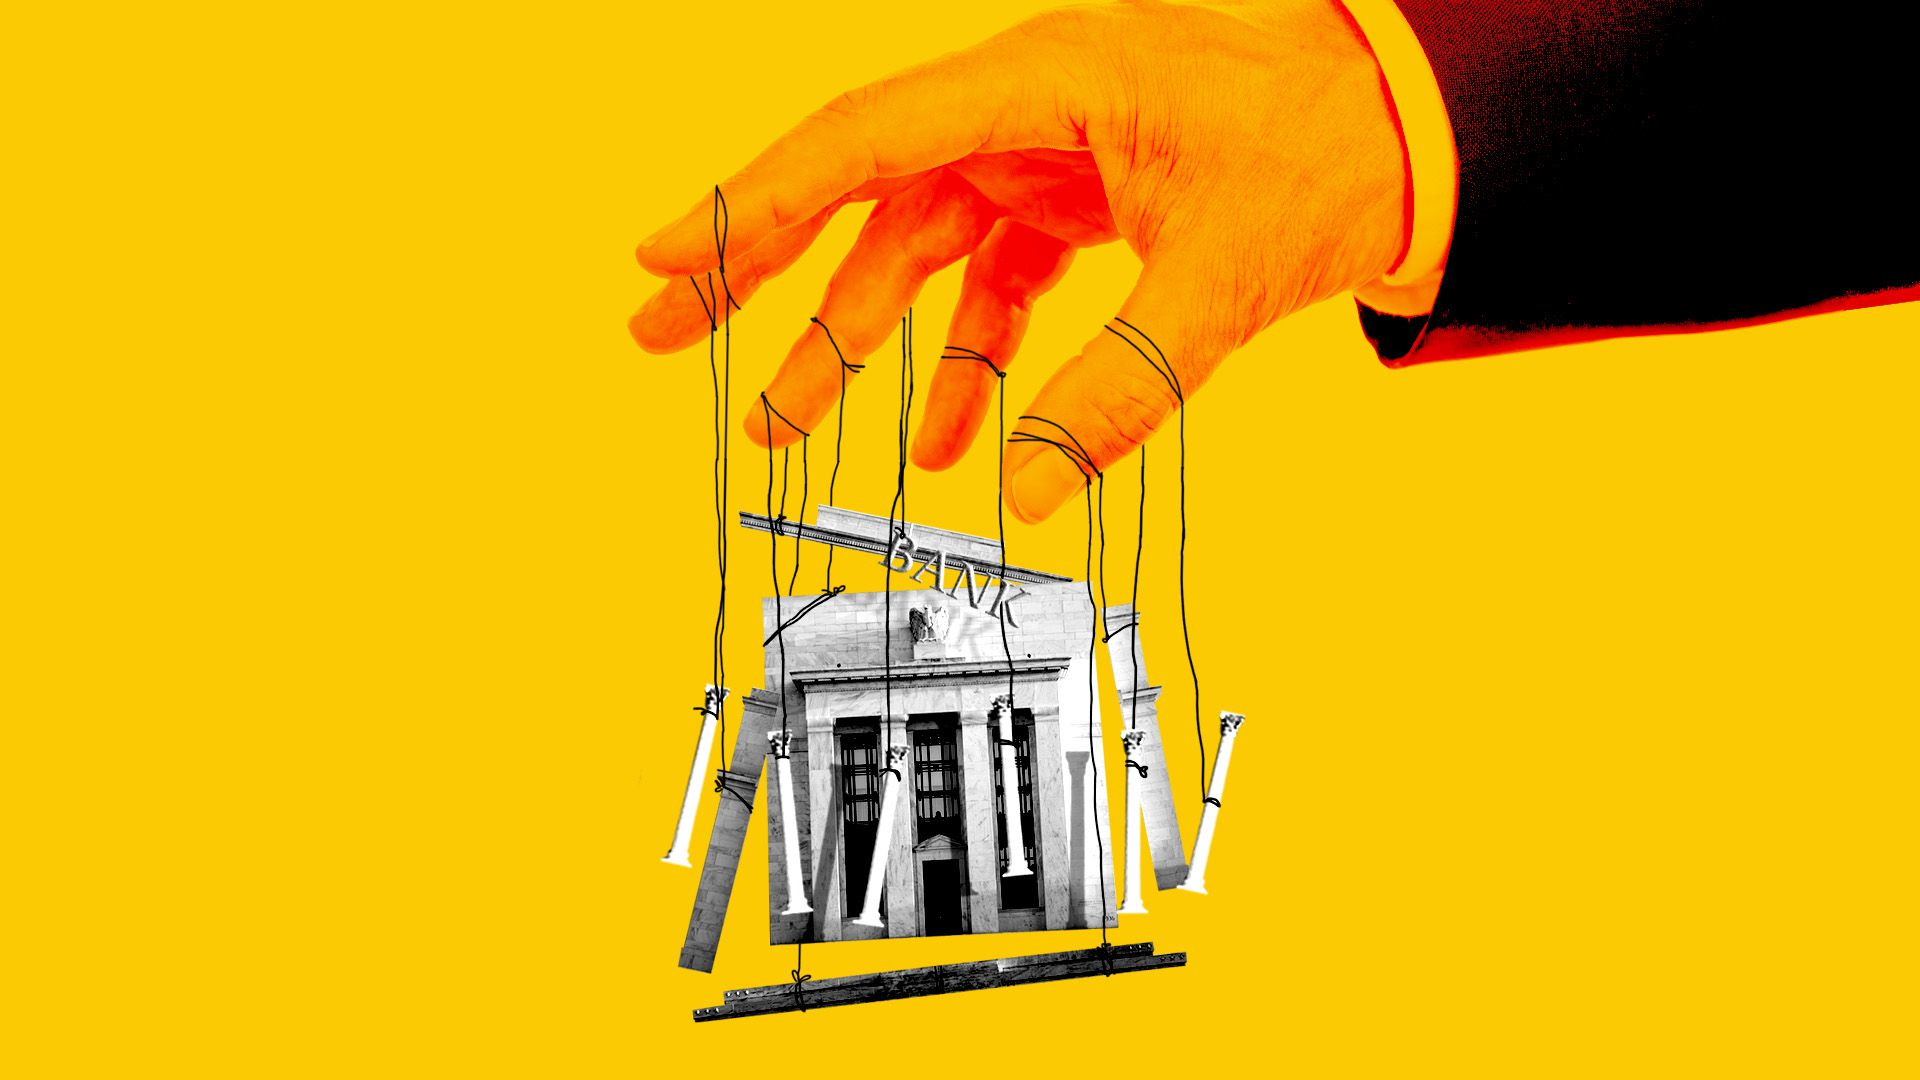 Illustration of a giant hand in a business suit holding a marionette bank